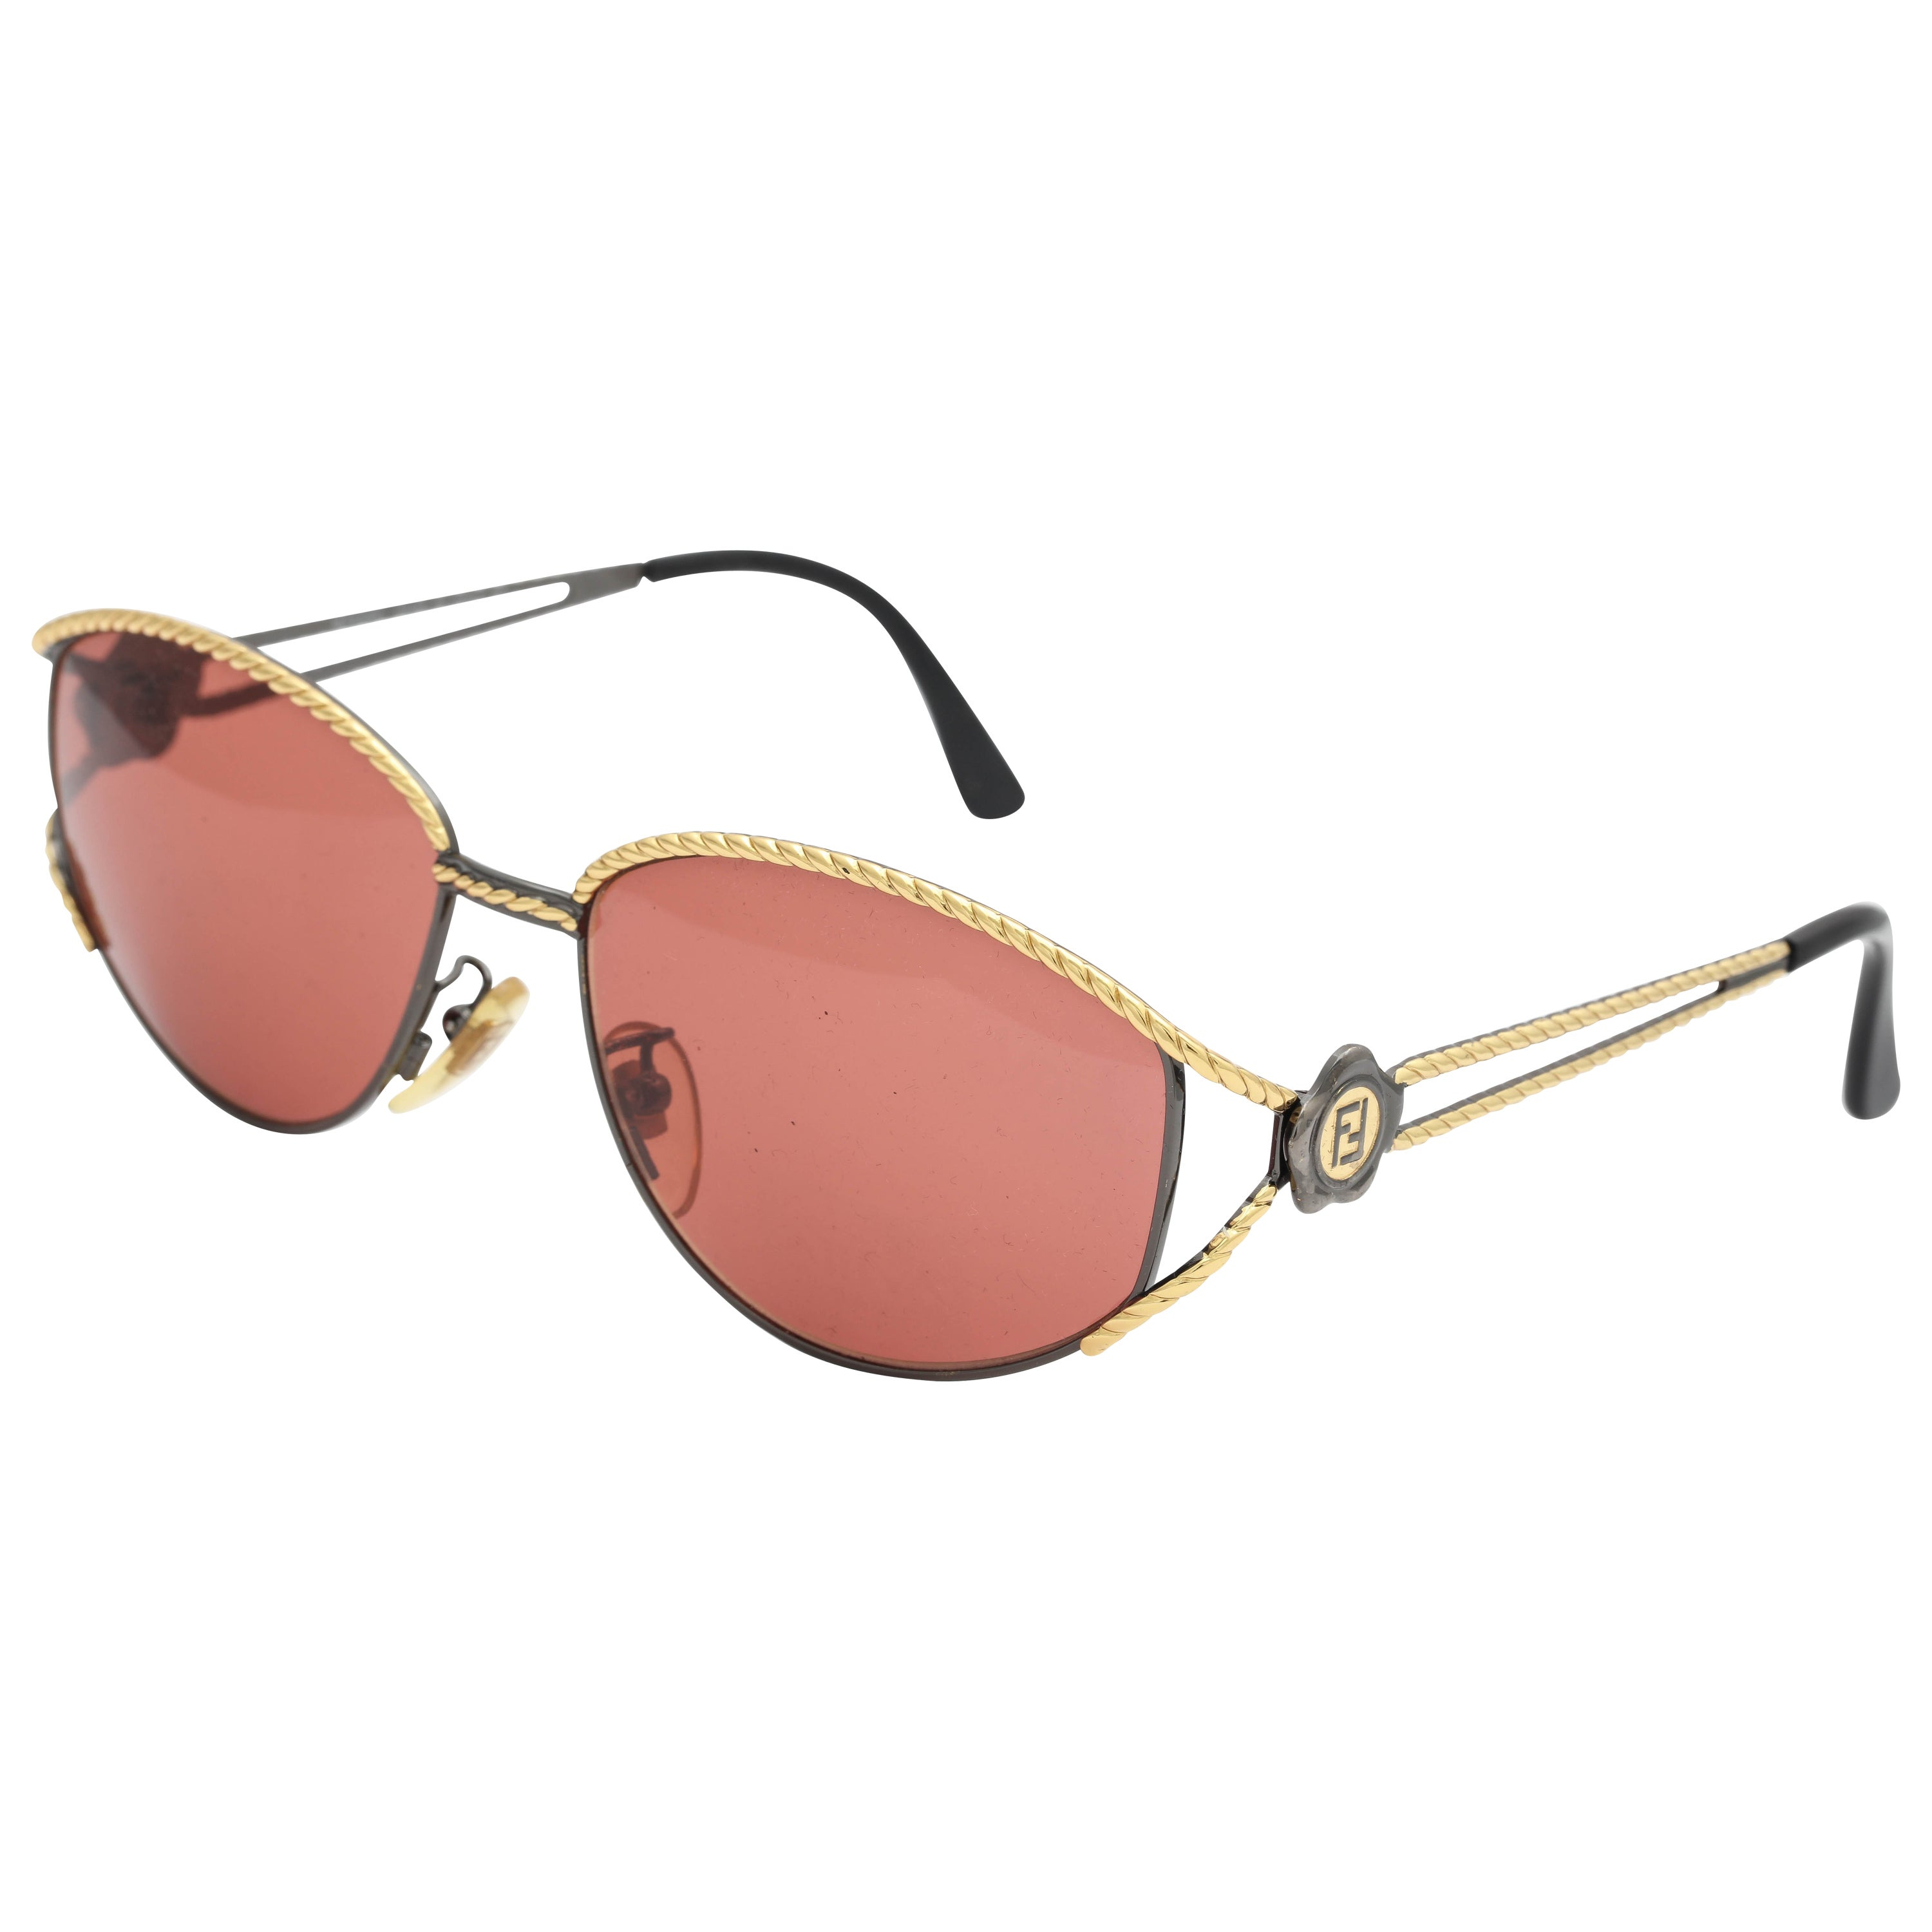 e76e1fab171 Vintage Fendi Sunglasses at 1stdibs